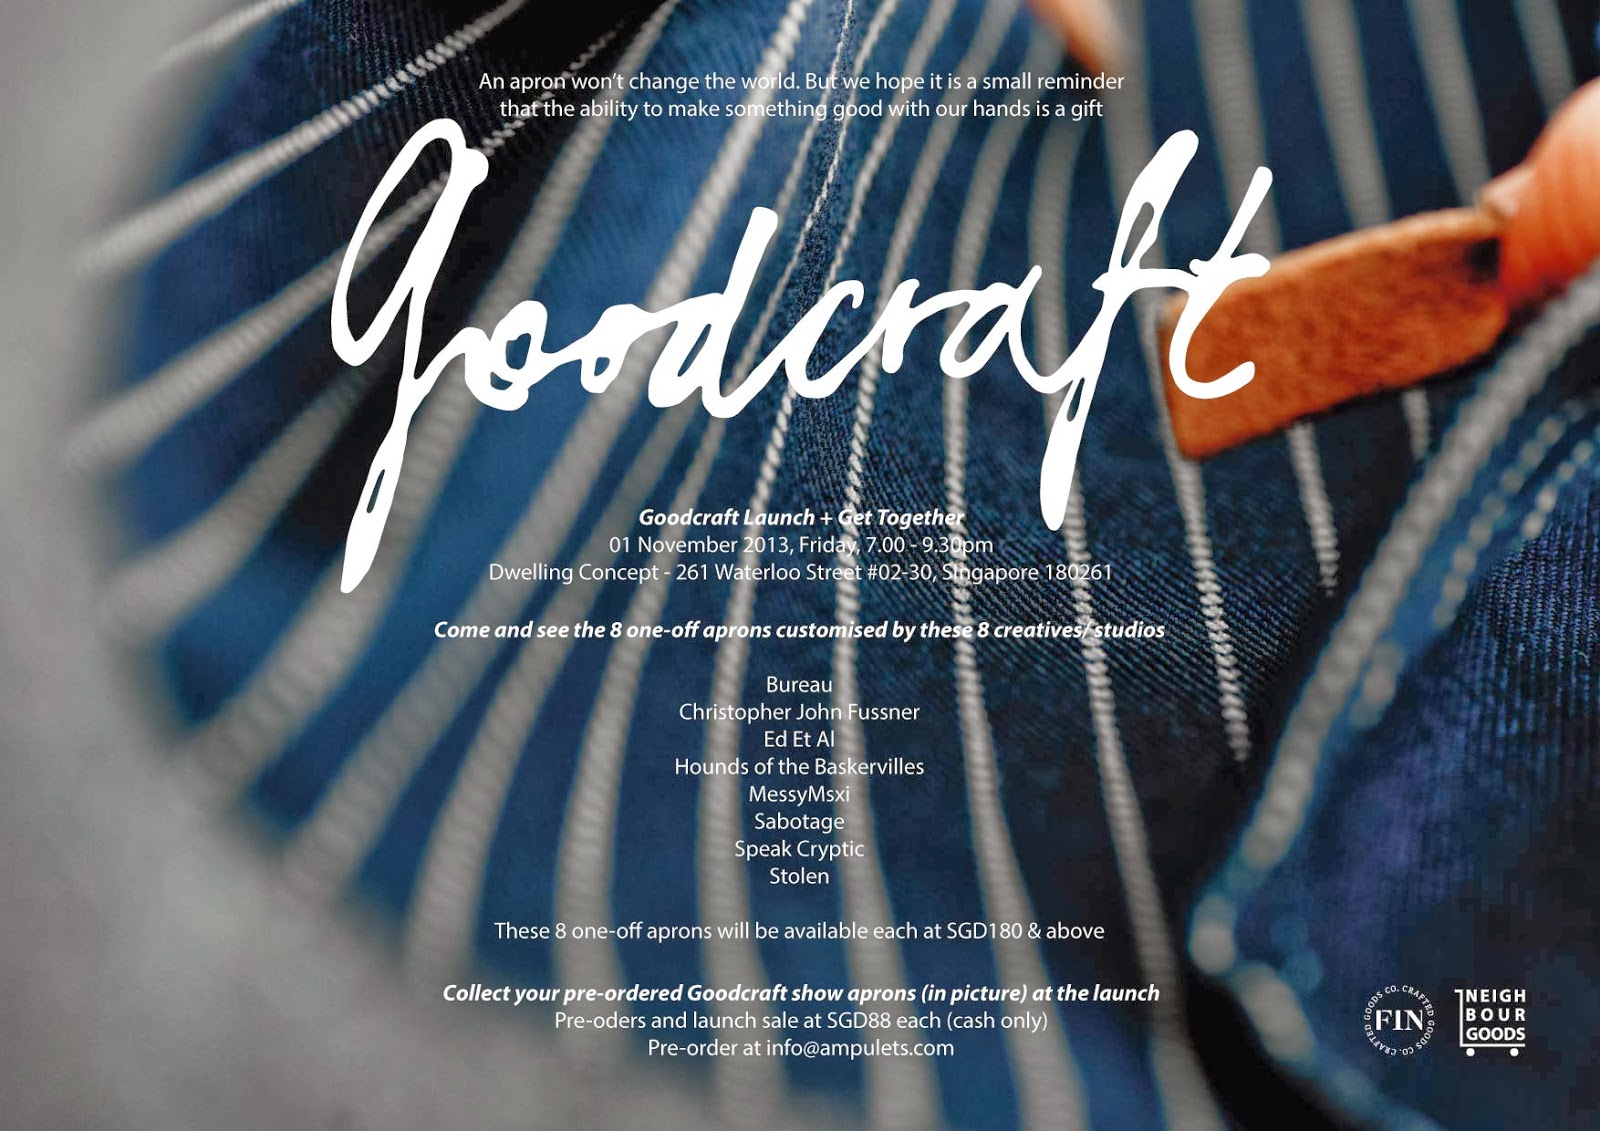 Blue apron singapore -  As Well As The Exhibition For Neighbourgoods Goodcraft Project Goodcraft Presents The Apron As A Reminder Of The Importance Of Craftsmanship